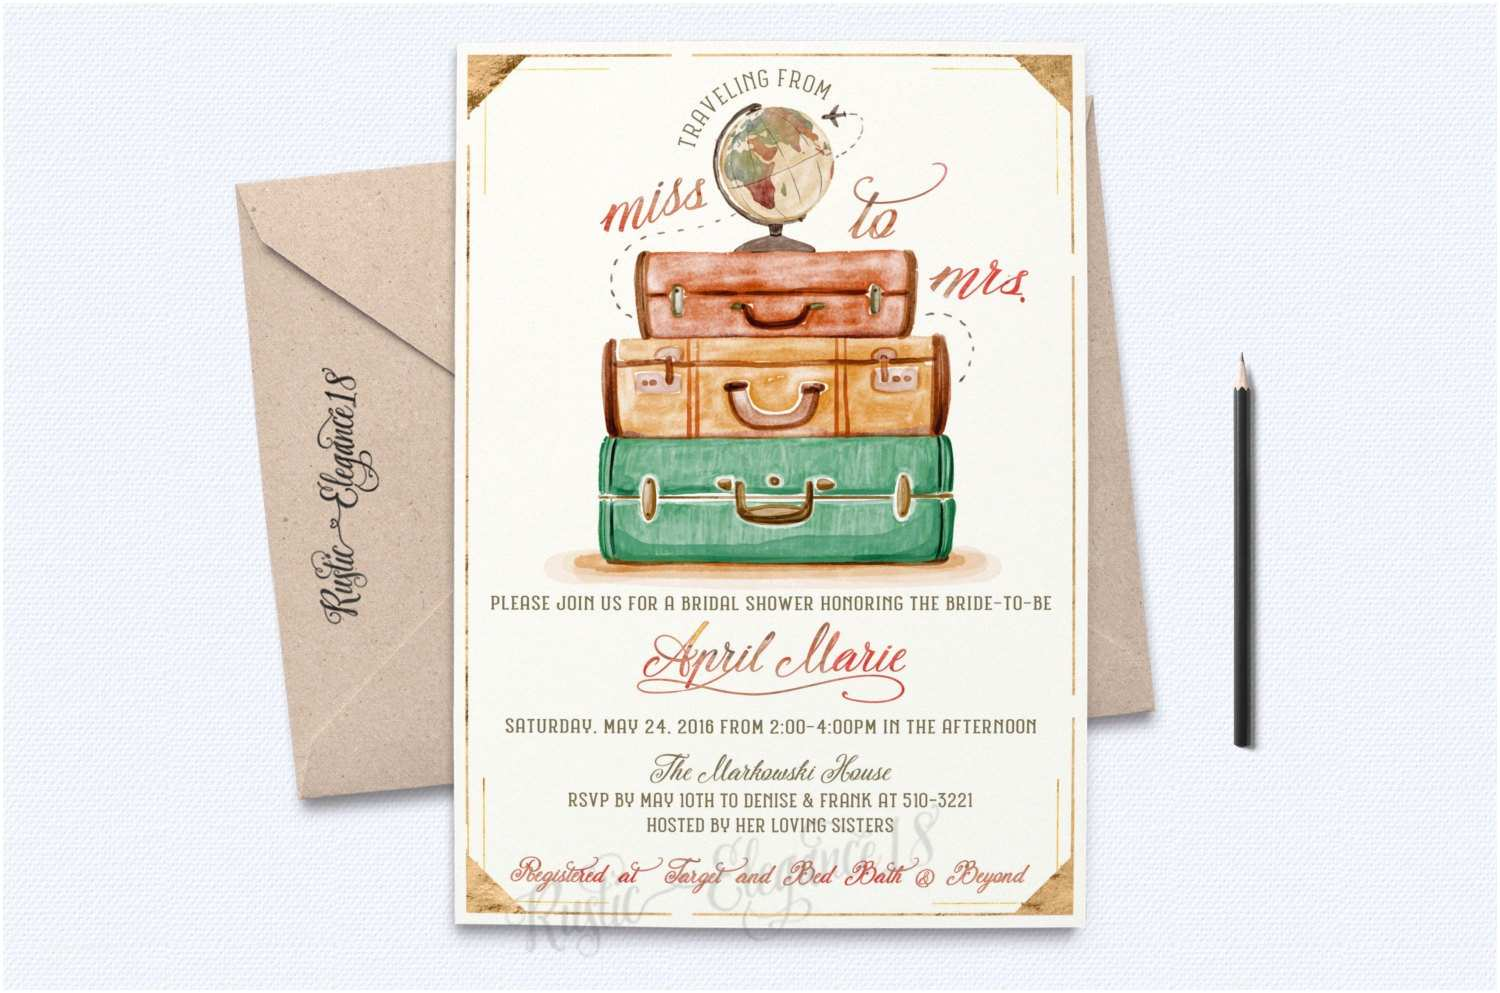 Travel themed Wedding Shower Invitations Traveling From Miss to Mrs Bridal Shower Invite Vintage Bridal